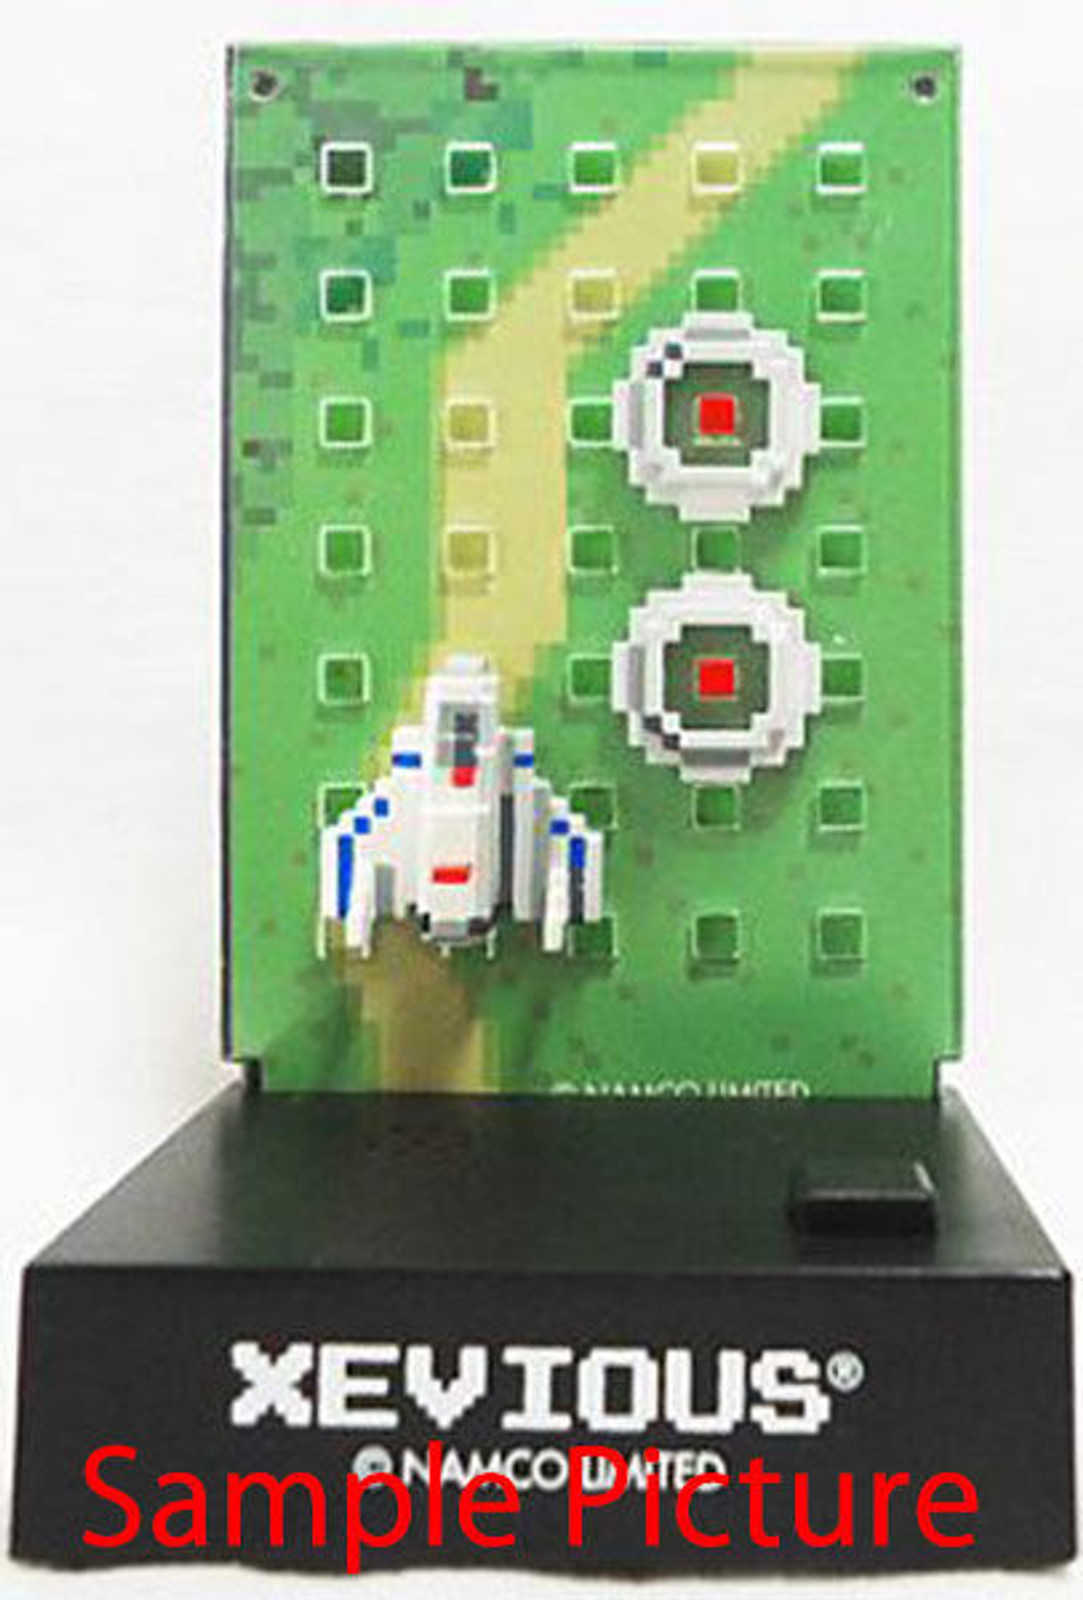 Namco Dotgraphics Xevious Figure with Game Sound JAPAN FAMICOM